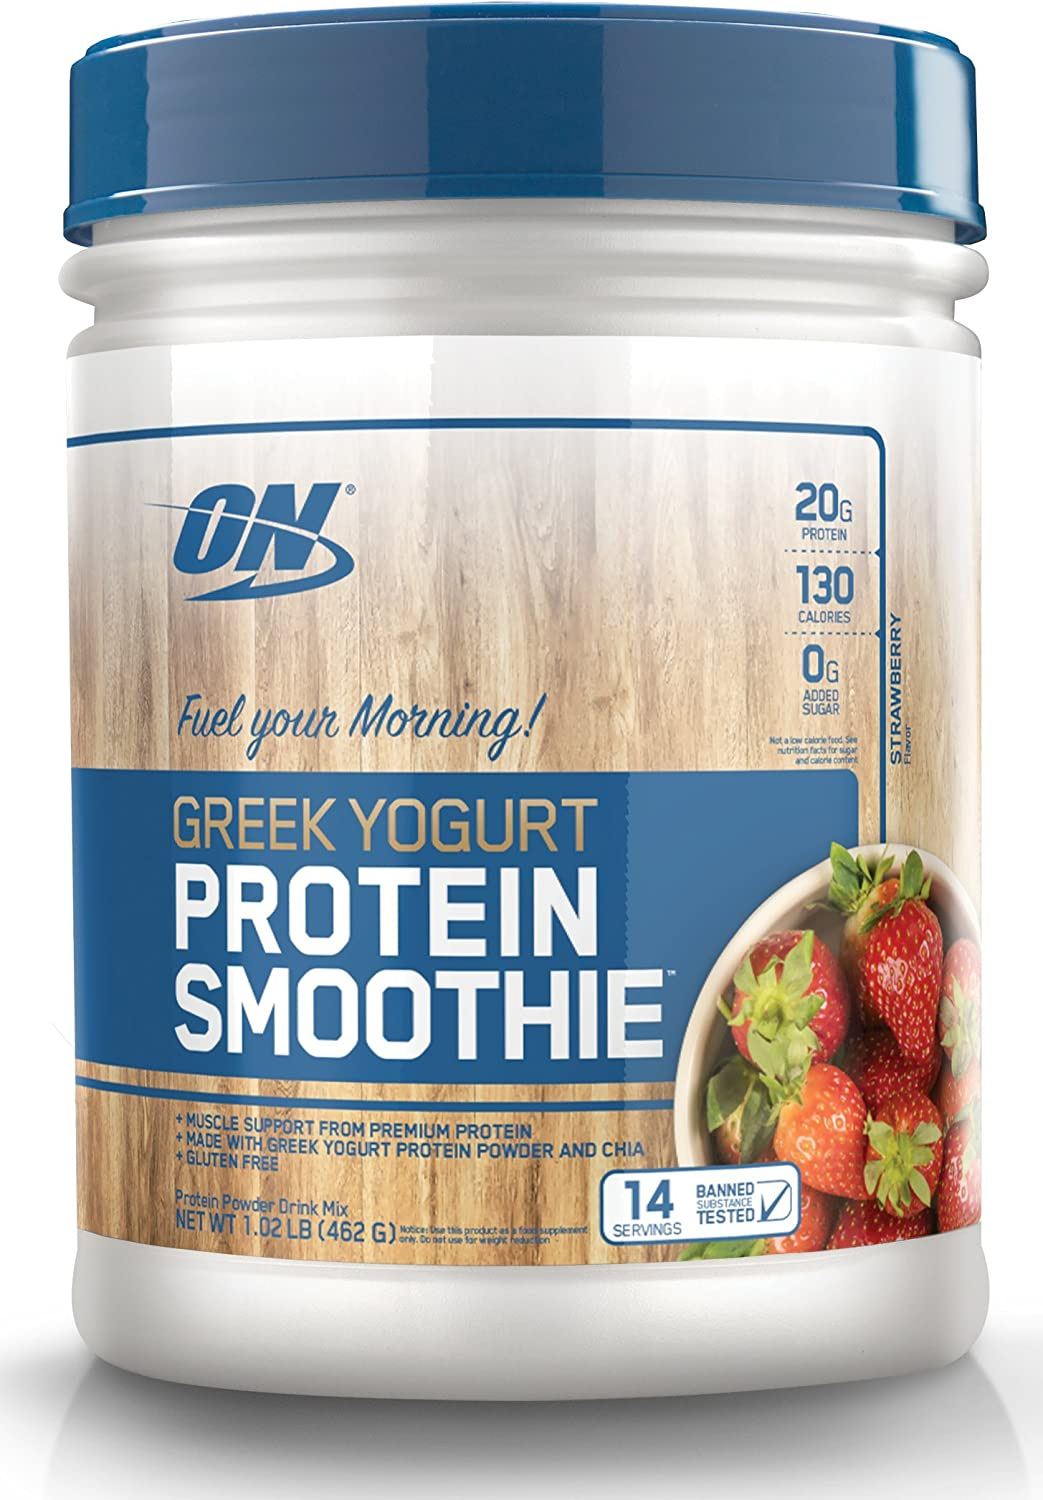 OPTIMUM NUTRITION On Greek Yogurt 14 Servings Protein Smoothie, Strawberry, 1.02 Pound